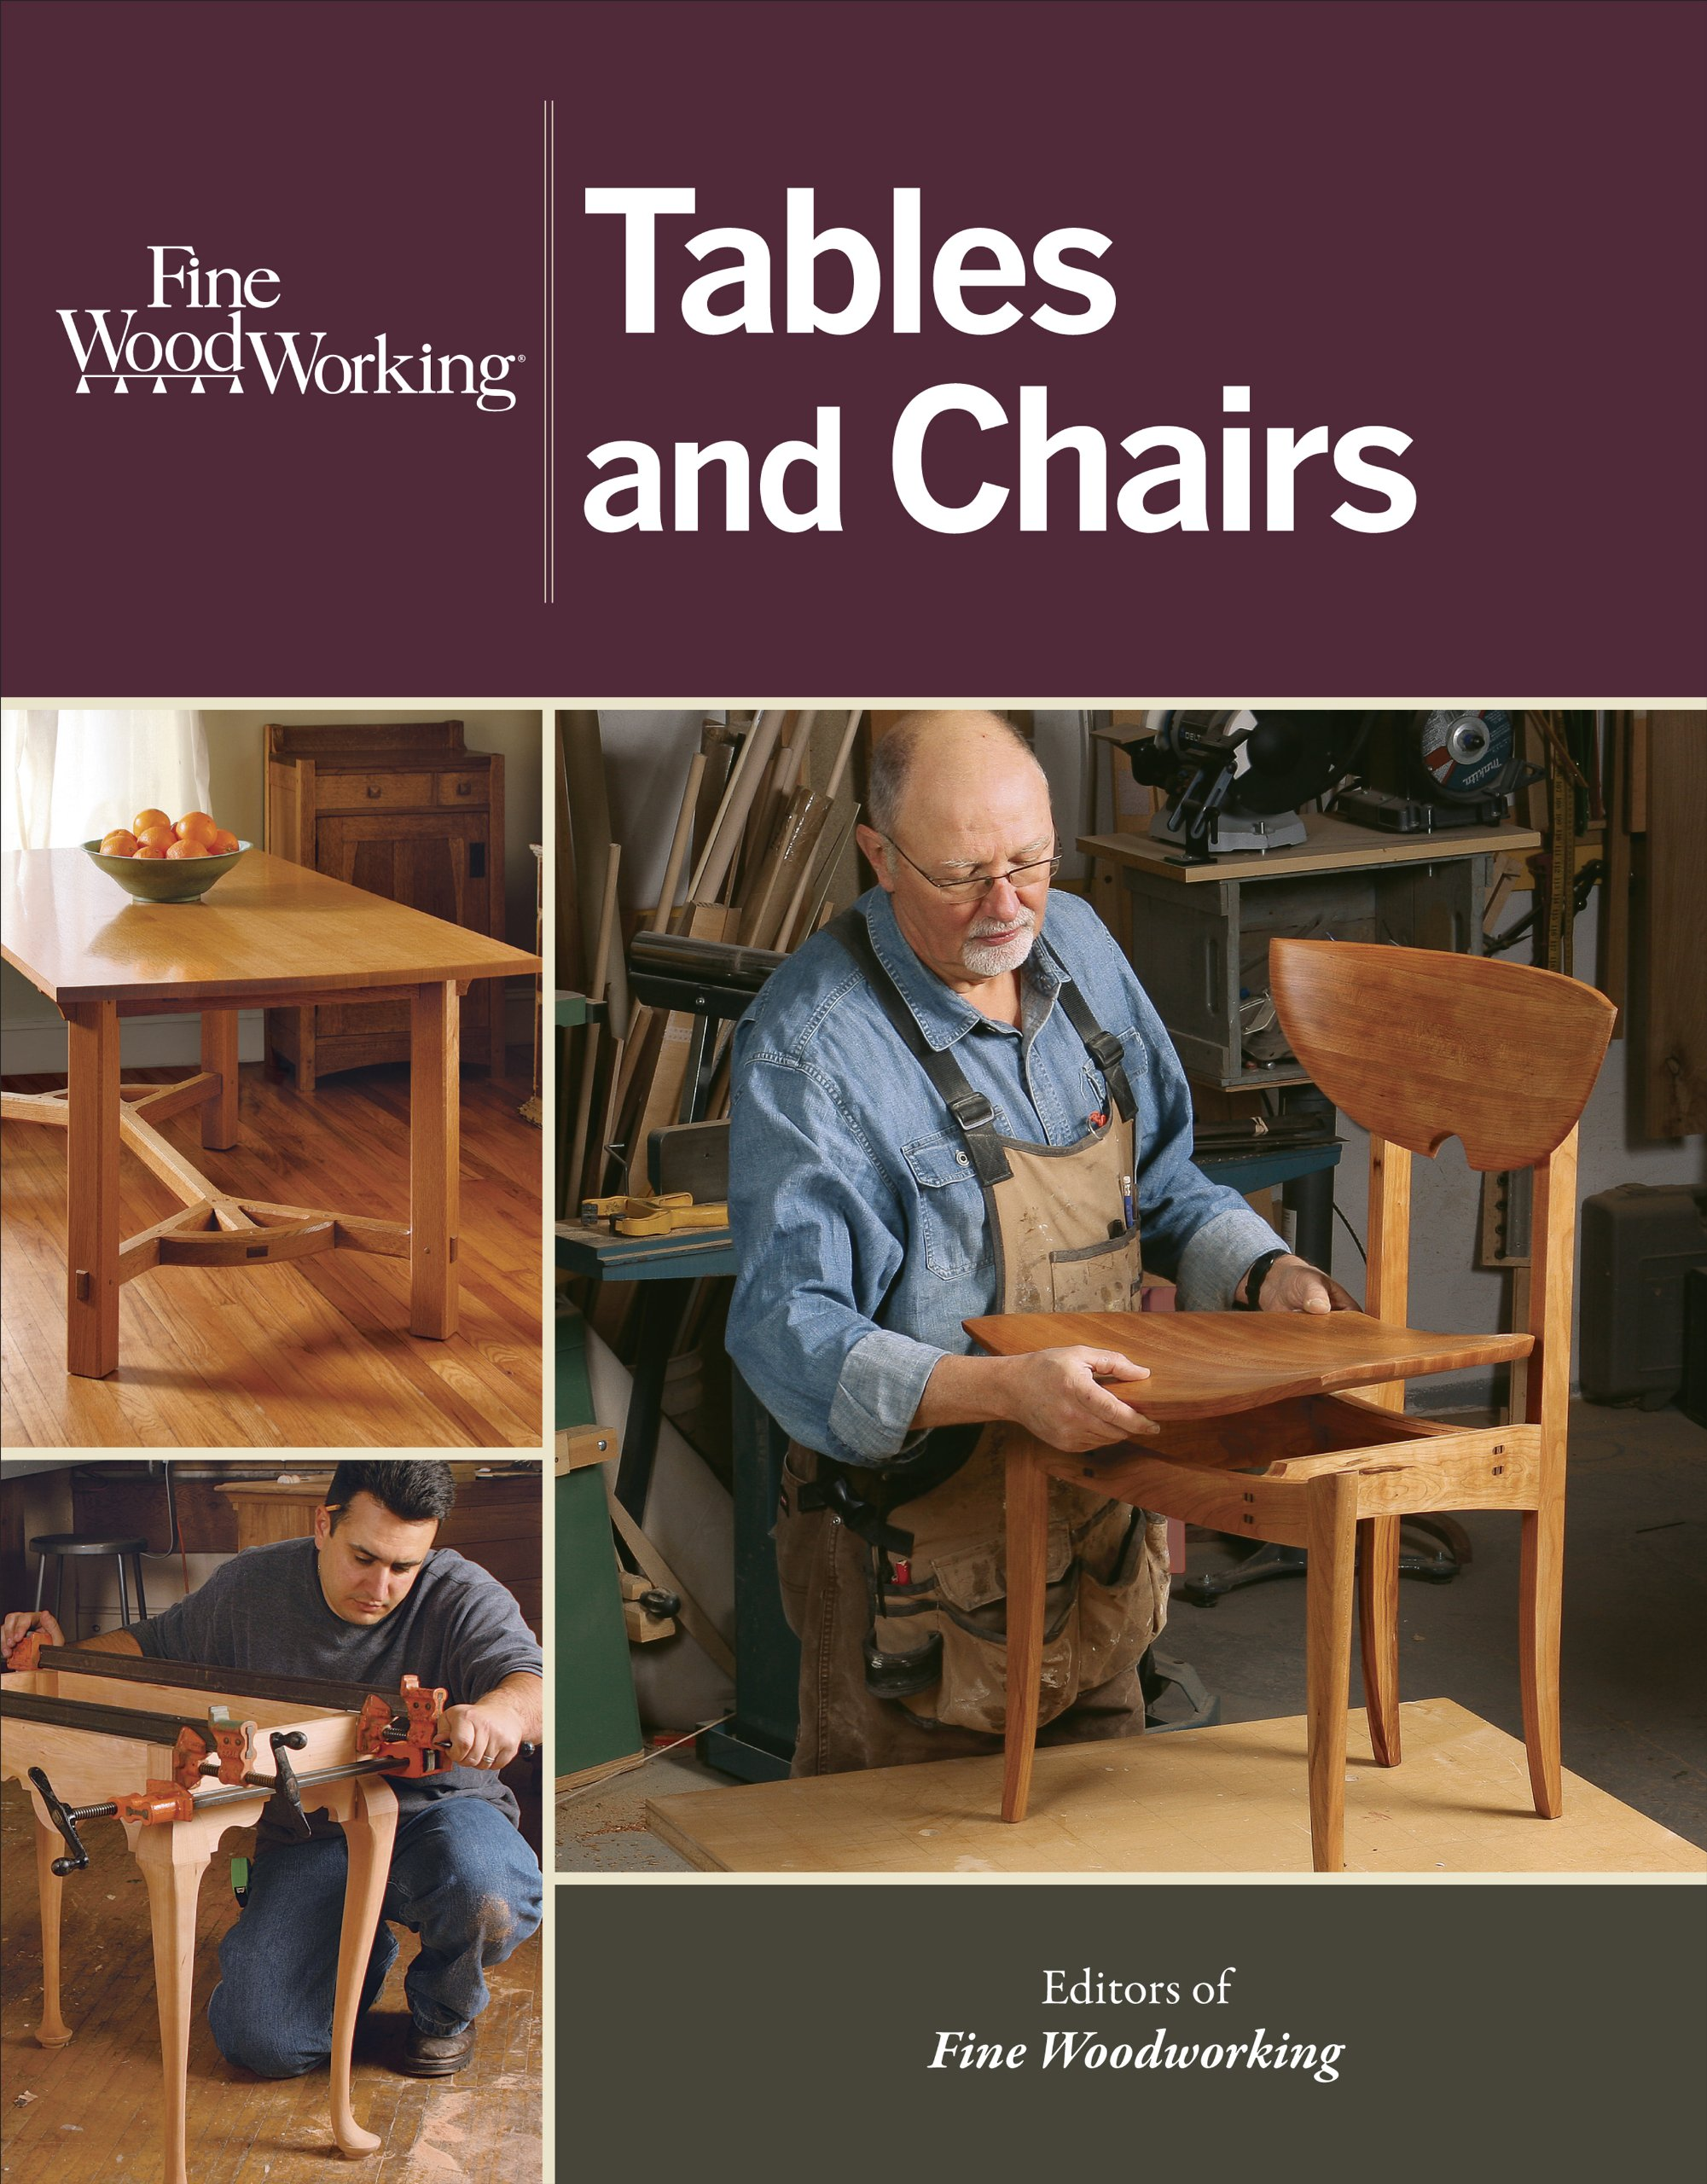 fine-woodworking-tables-and-chairs